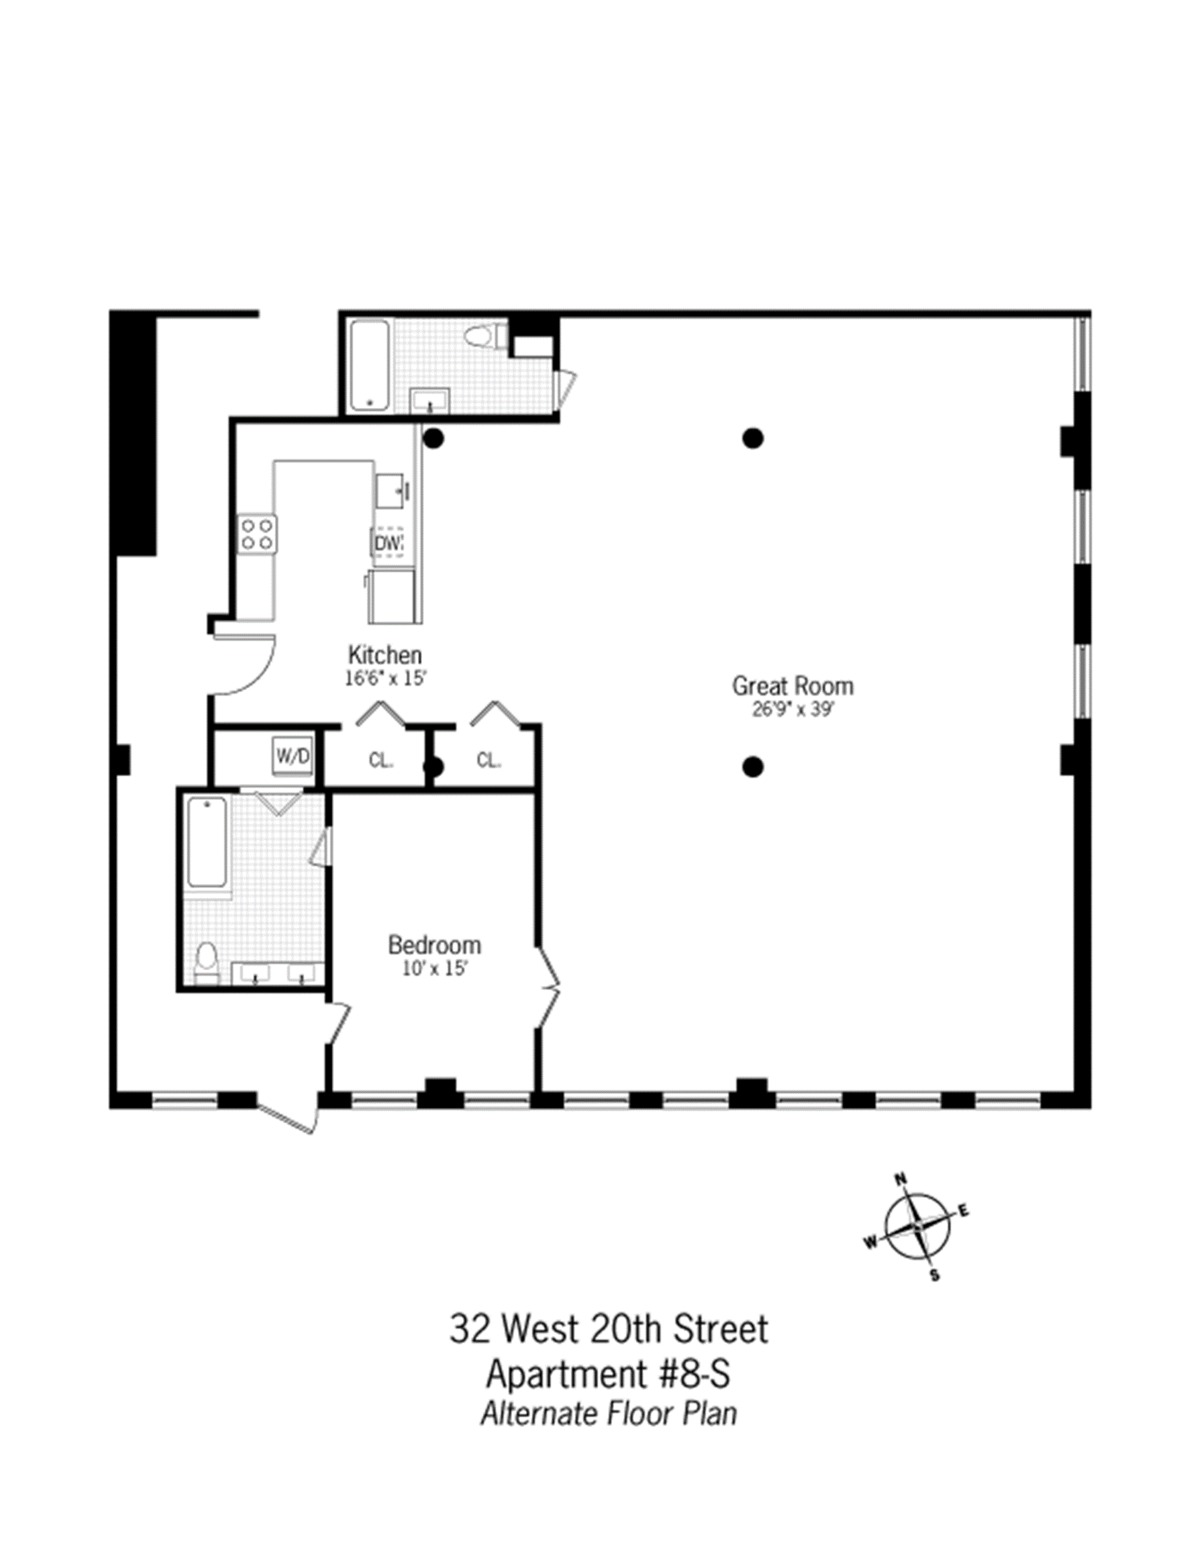 hints in the floor plan of a life lived in 32 West 20 Street loft as – Floor Plans With Great Rooms